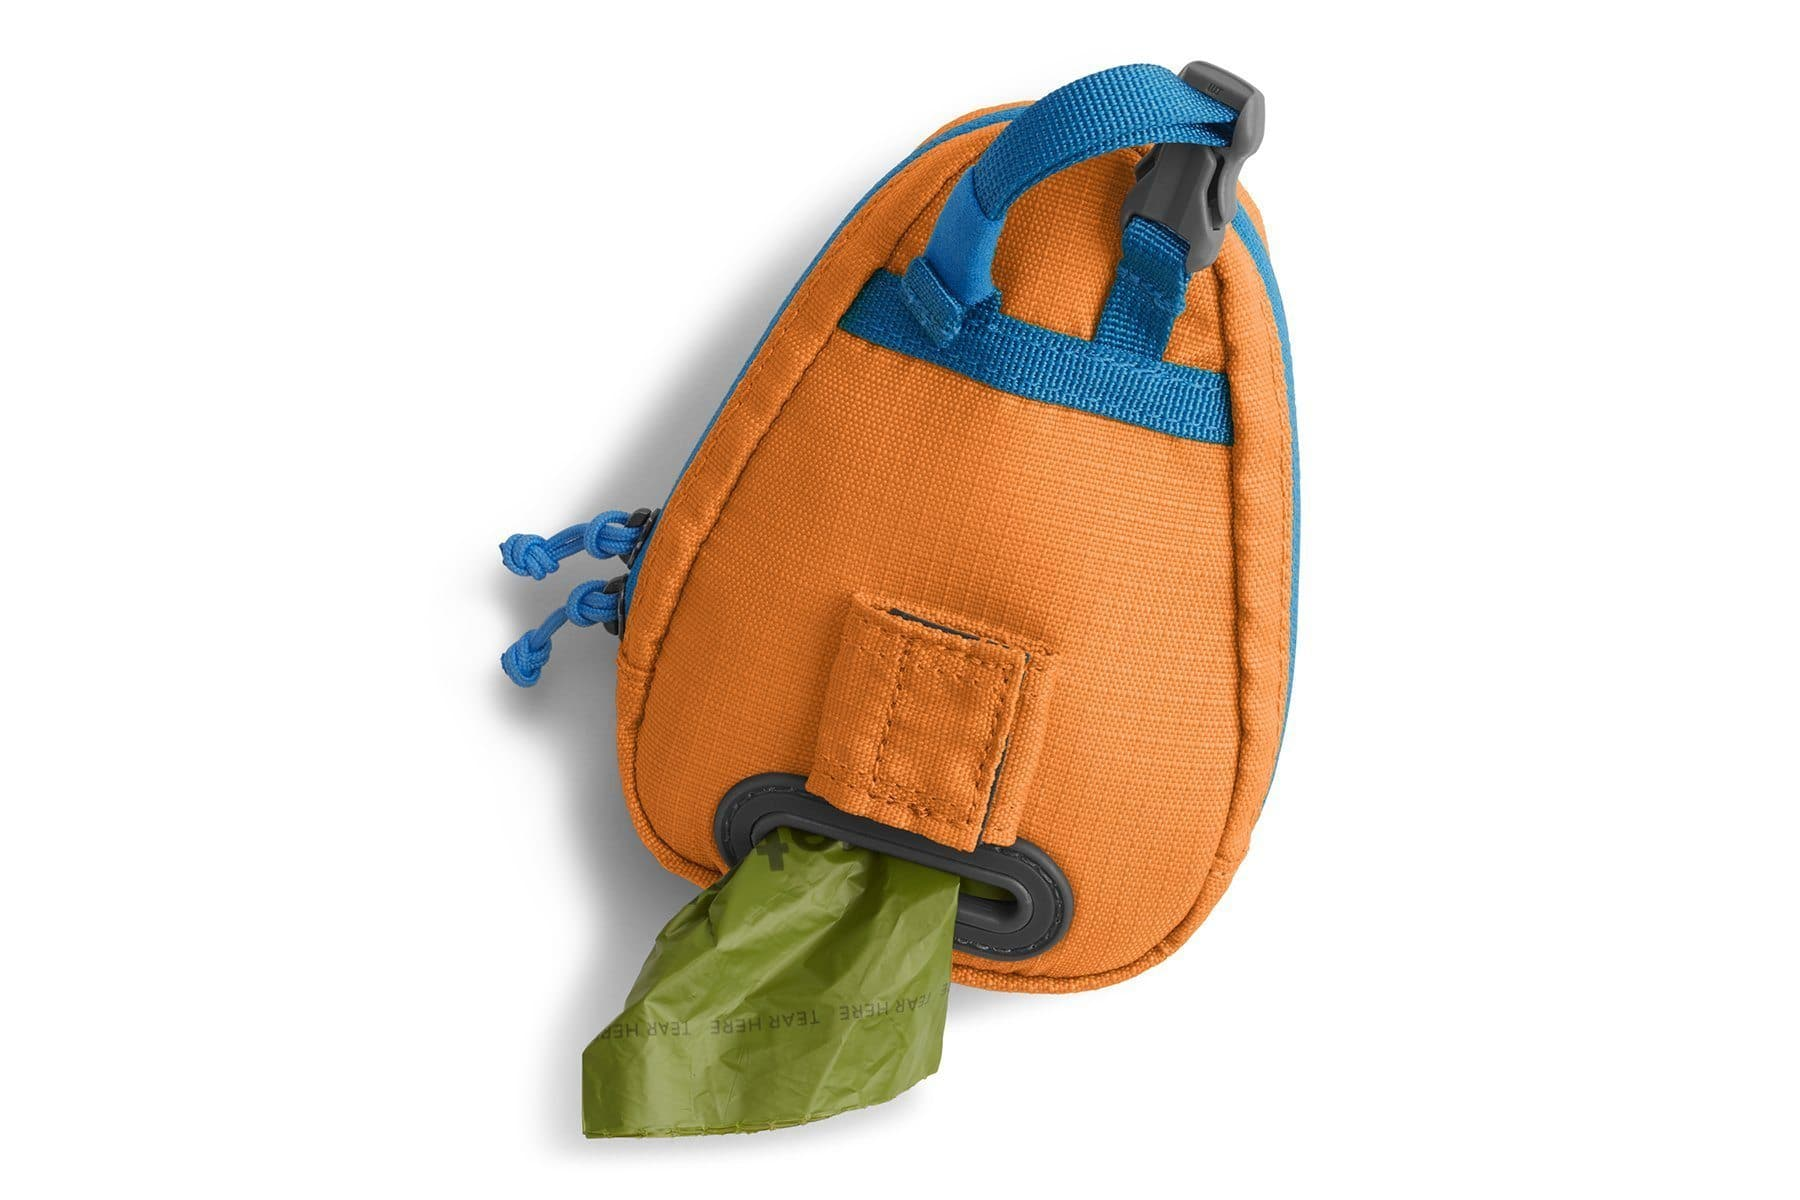 Dispensador de Bolsas Stash Bag® en Naranja - Ruffwear México